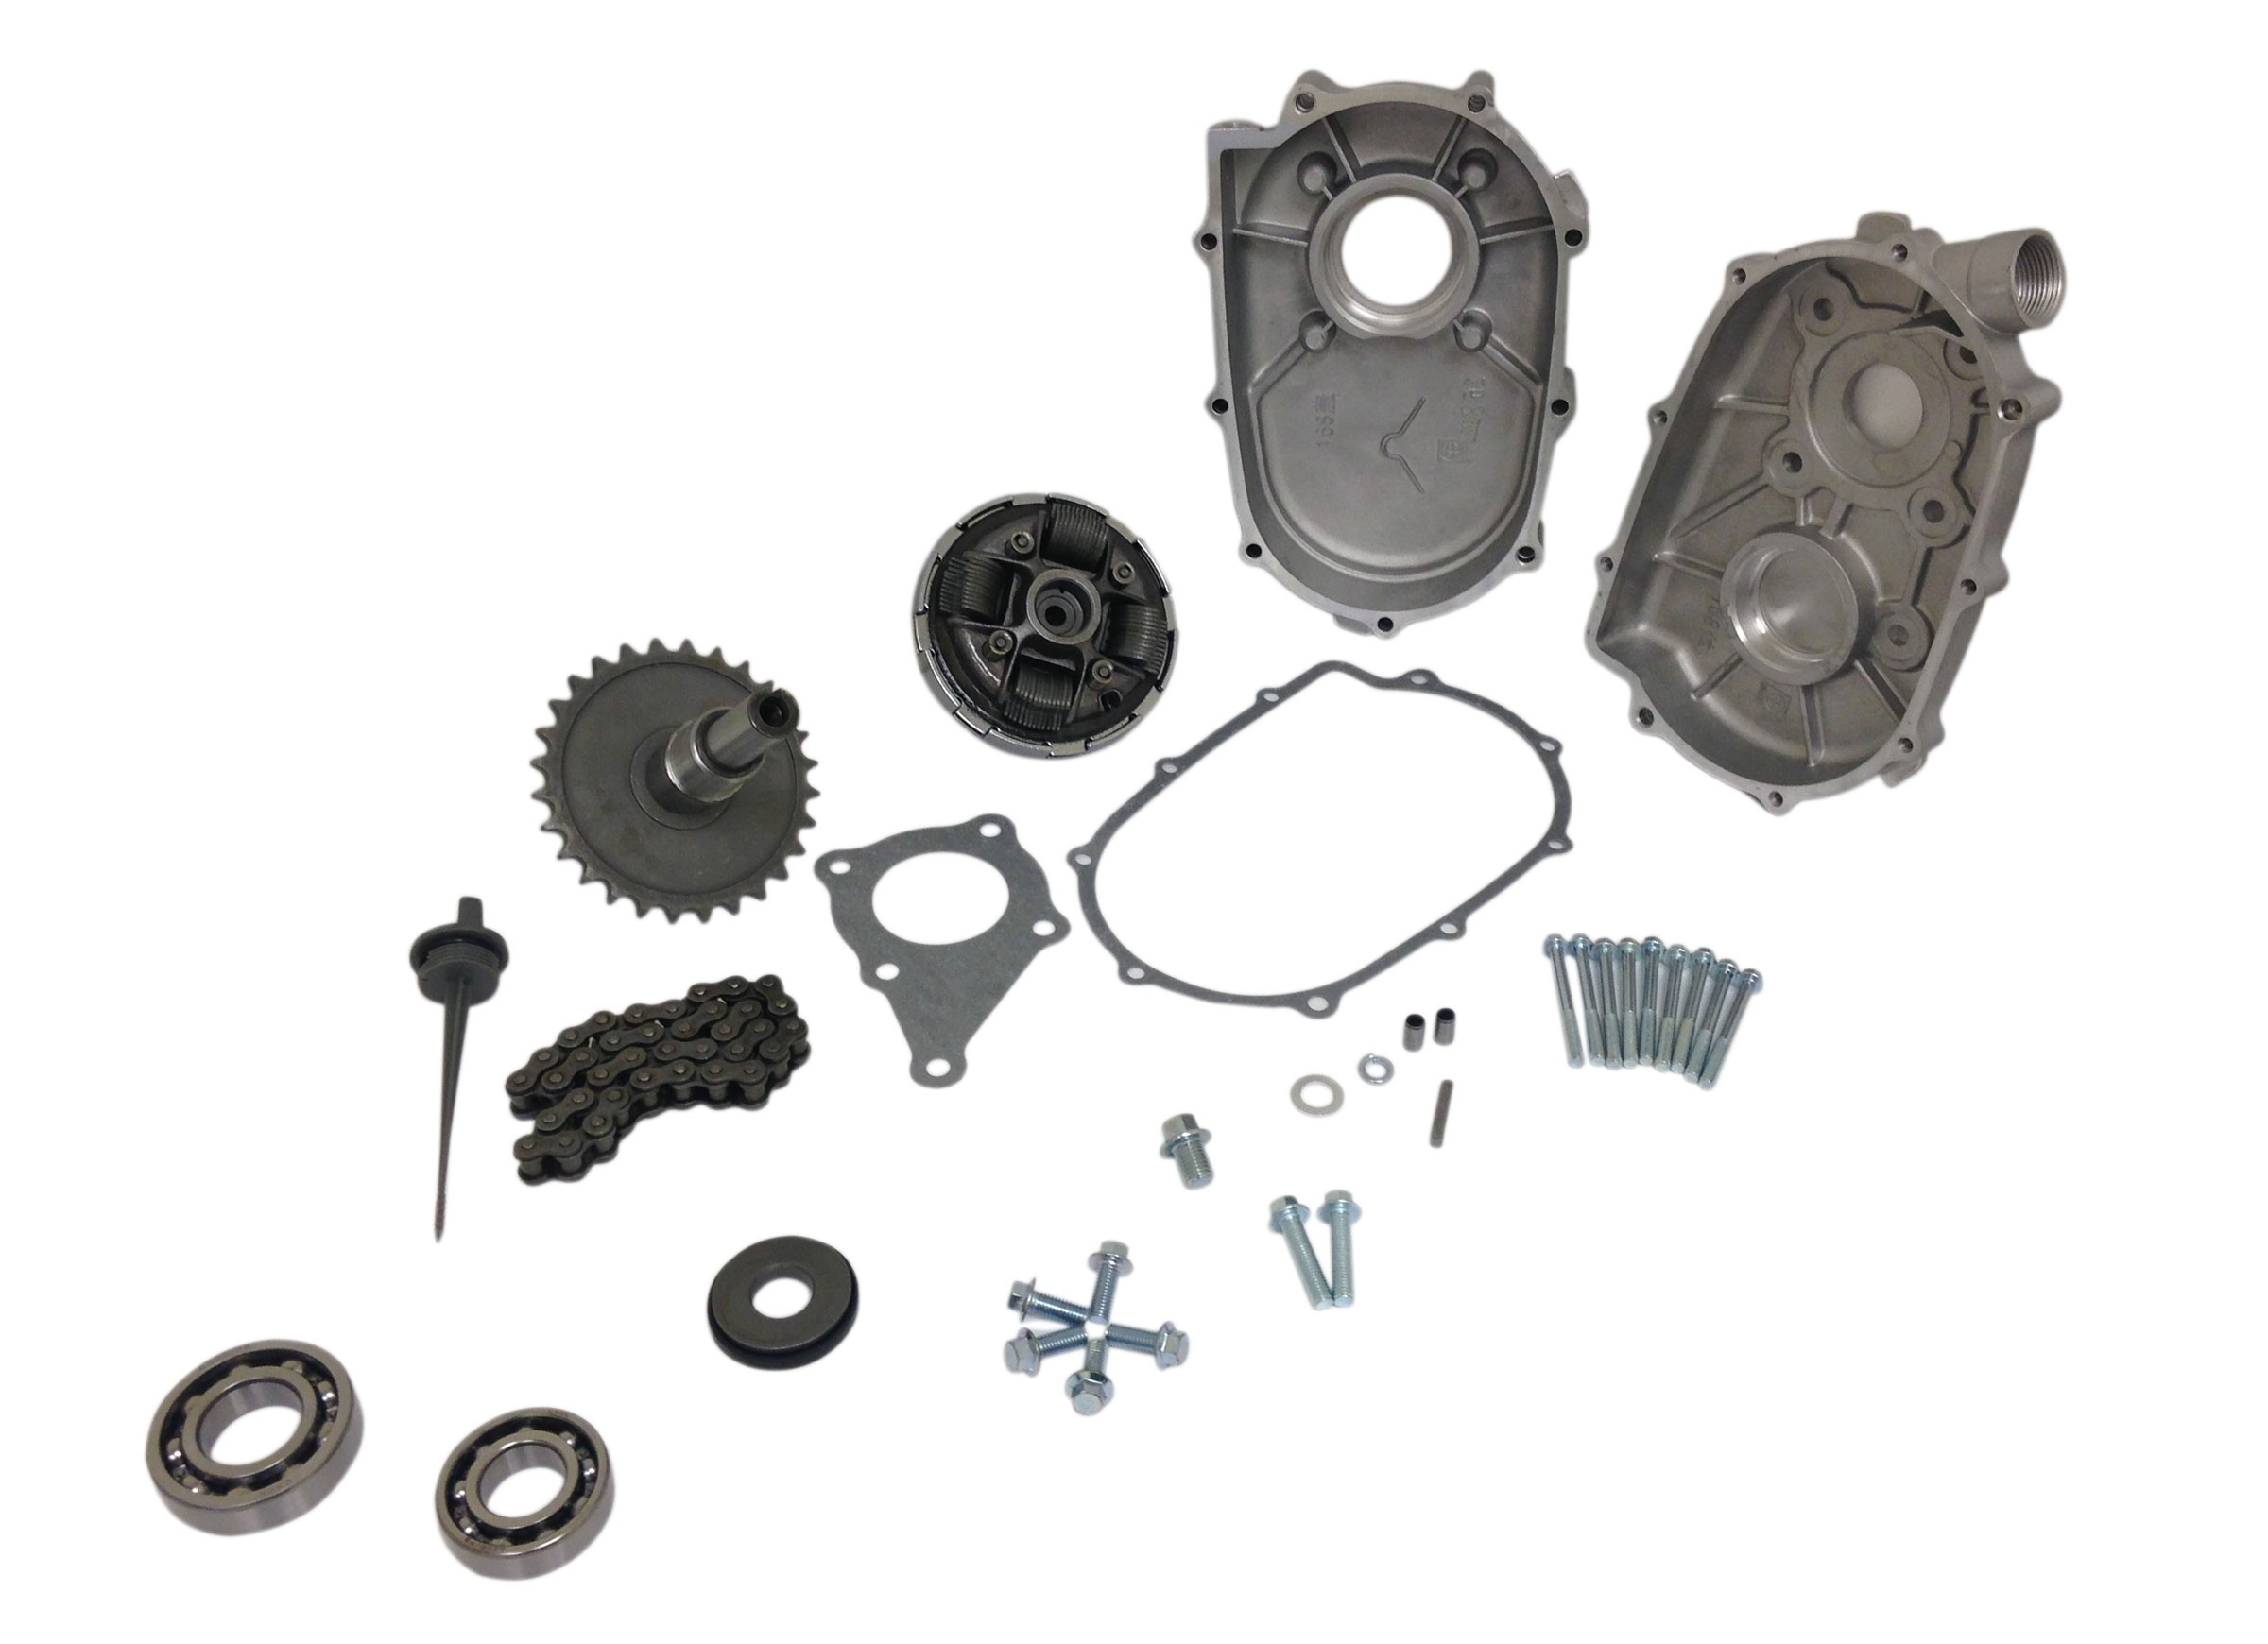 Honda 5 5 Hp Engine Diagram Out Of Stock 2 1 Reduction Gearbox Kit for Honda 6 5hp Gx200